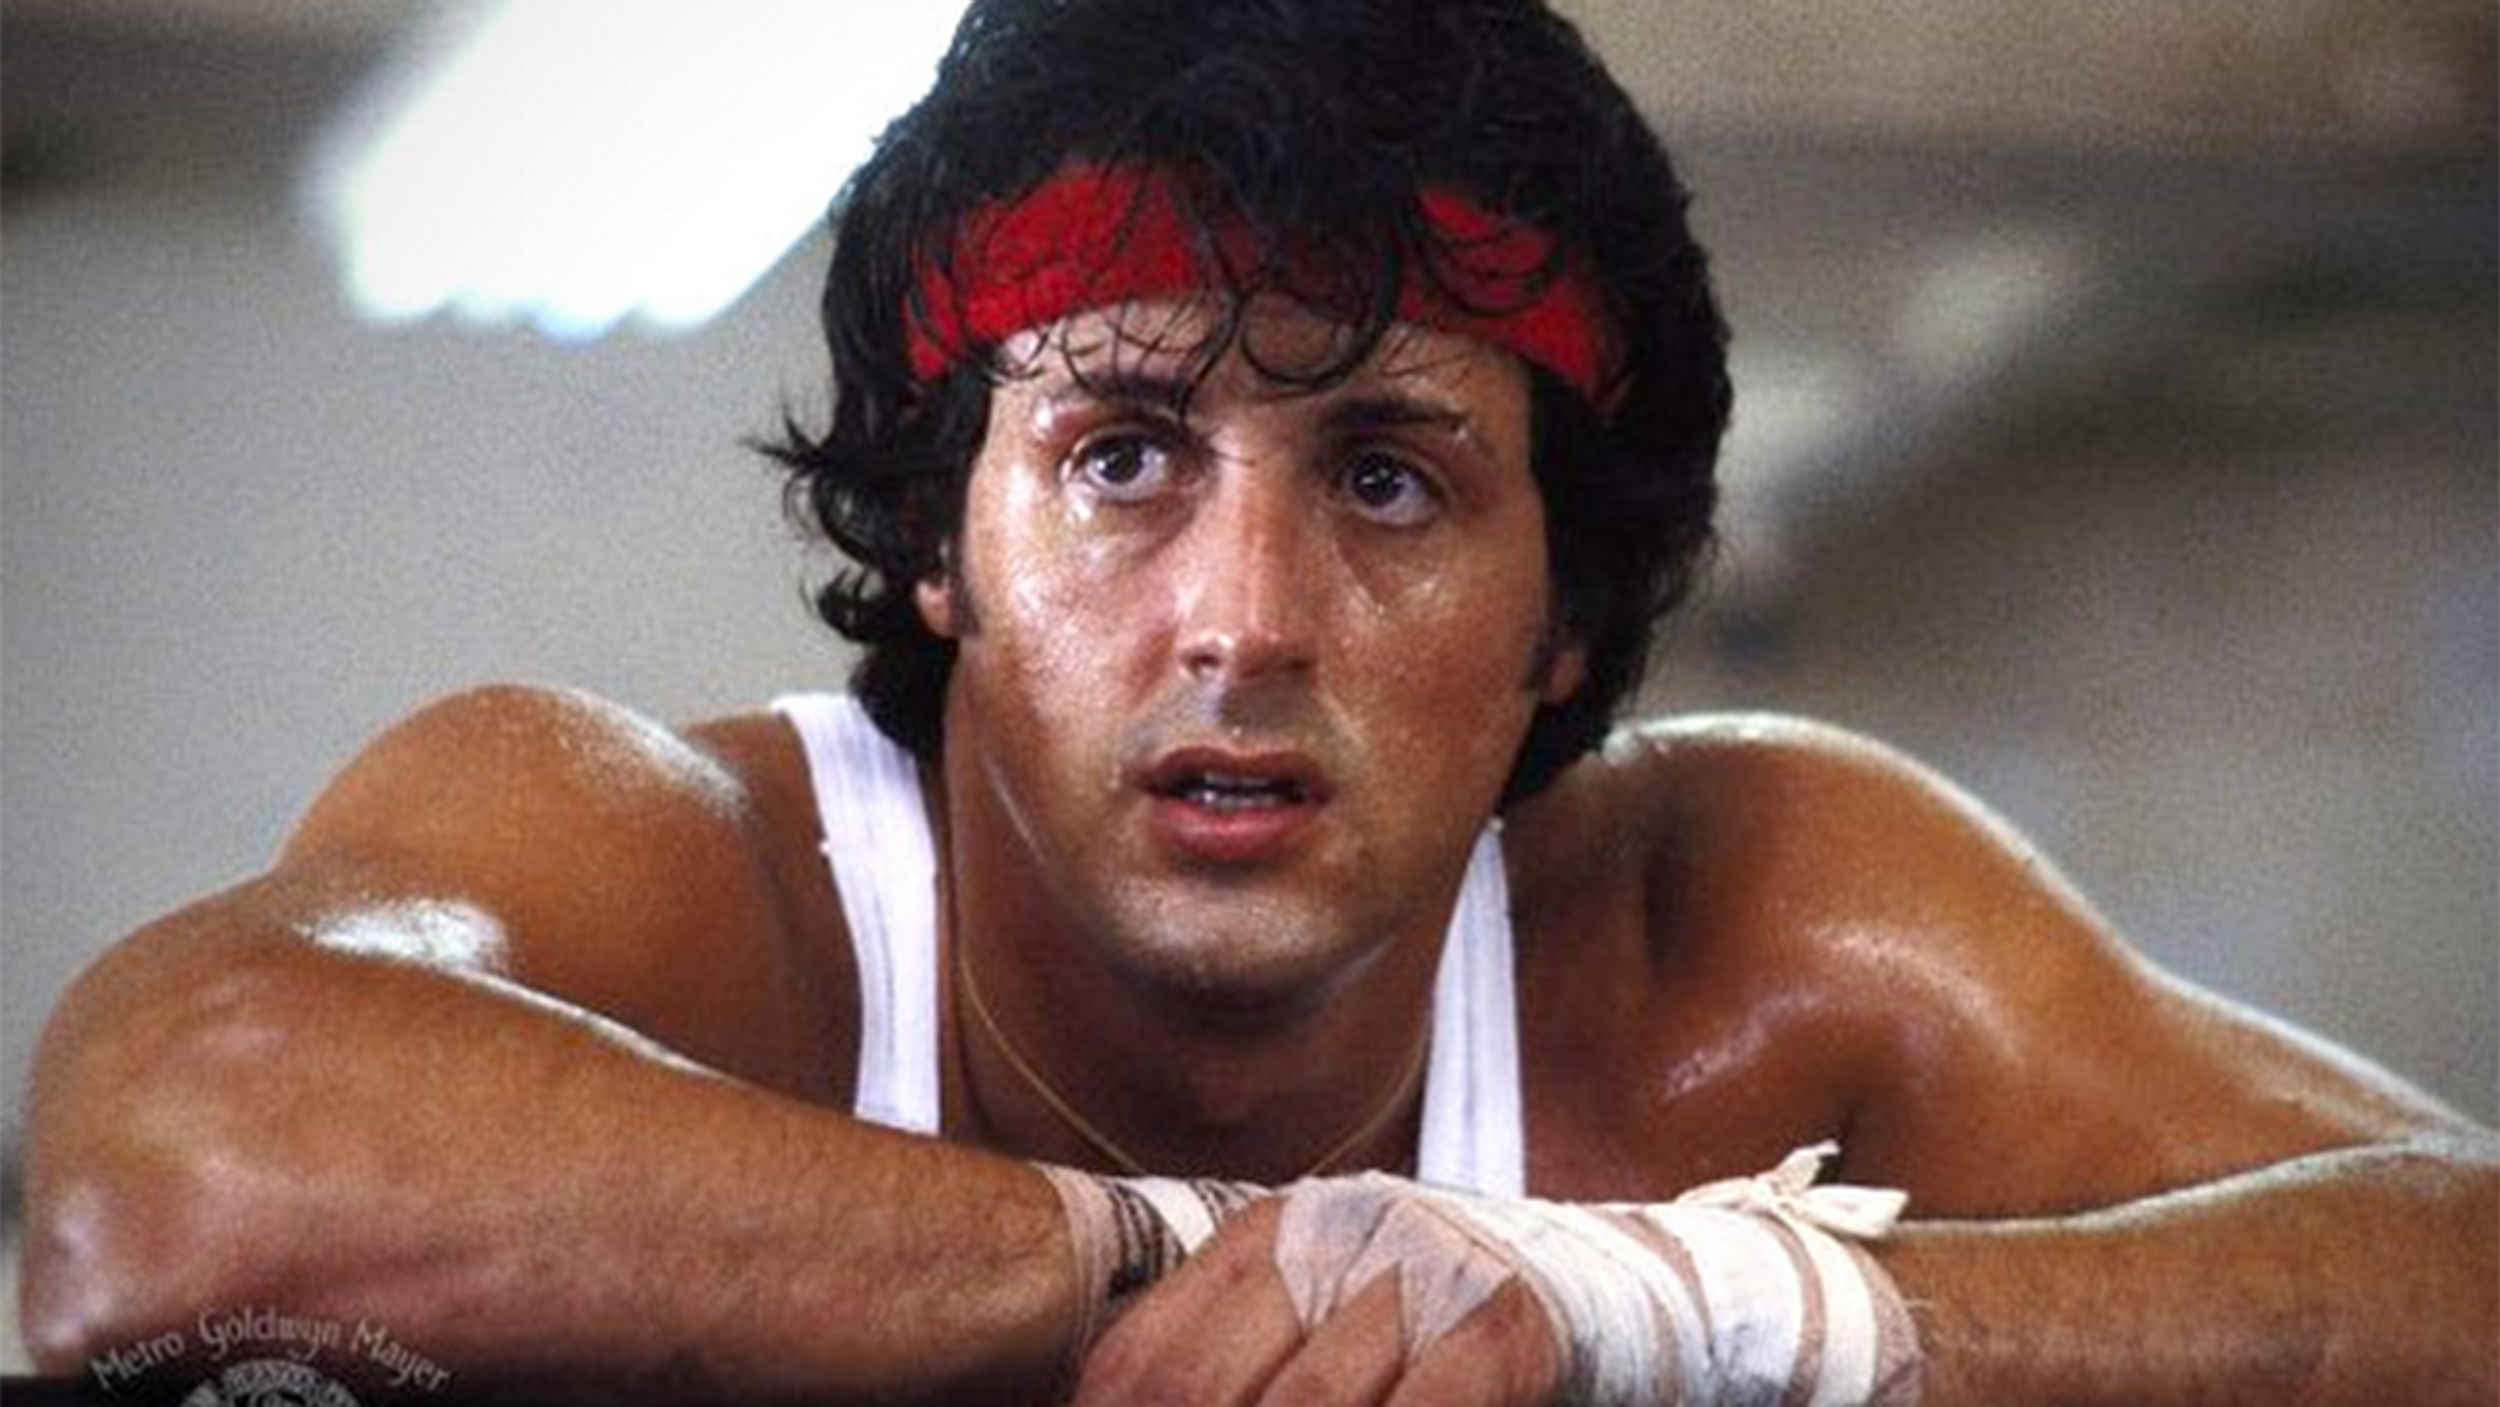 The Five Best Scenes From The Rocky Movies   Playbuzz